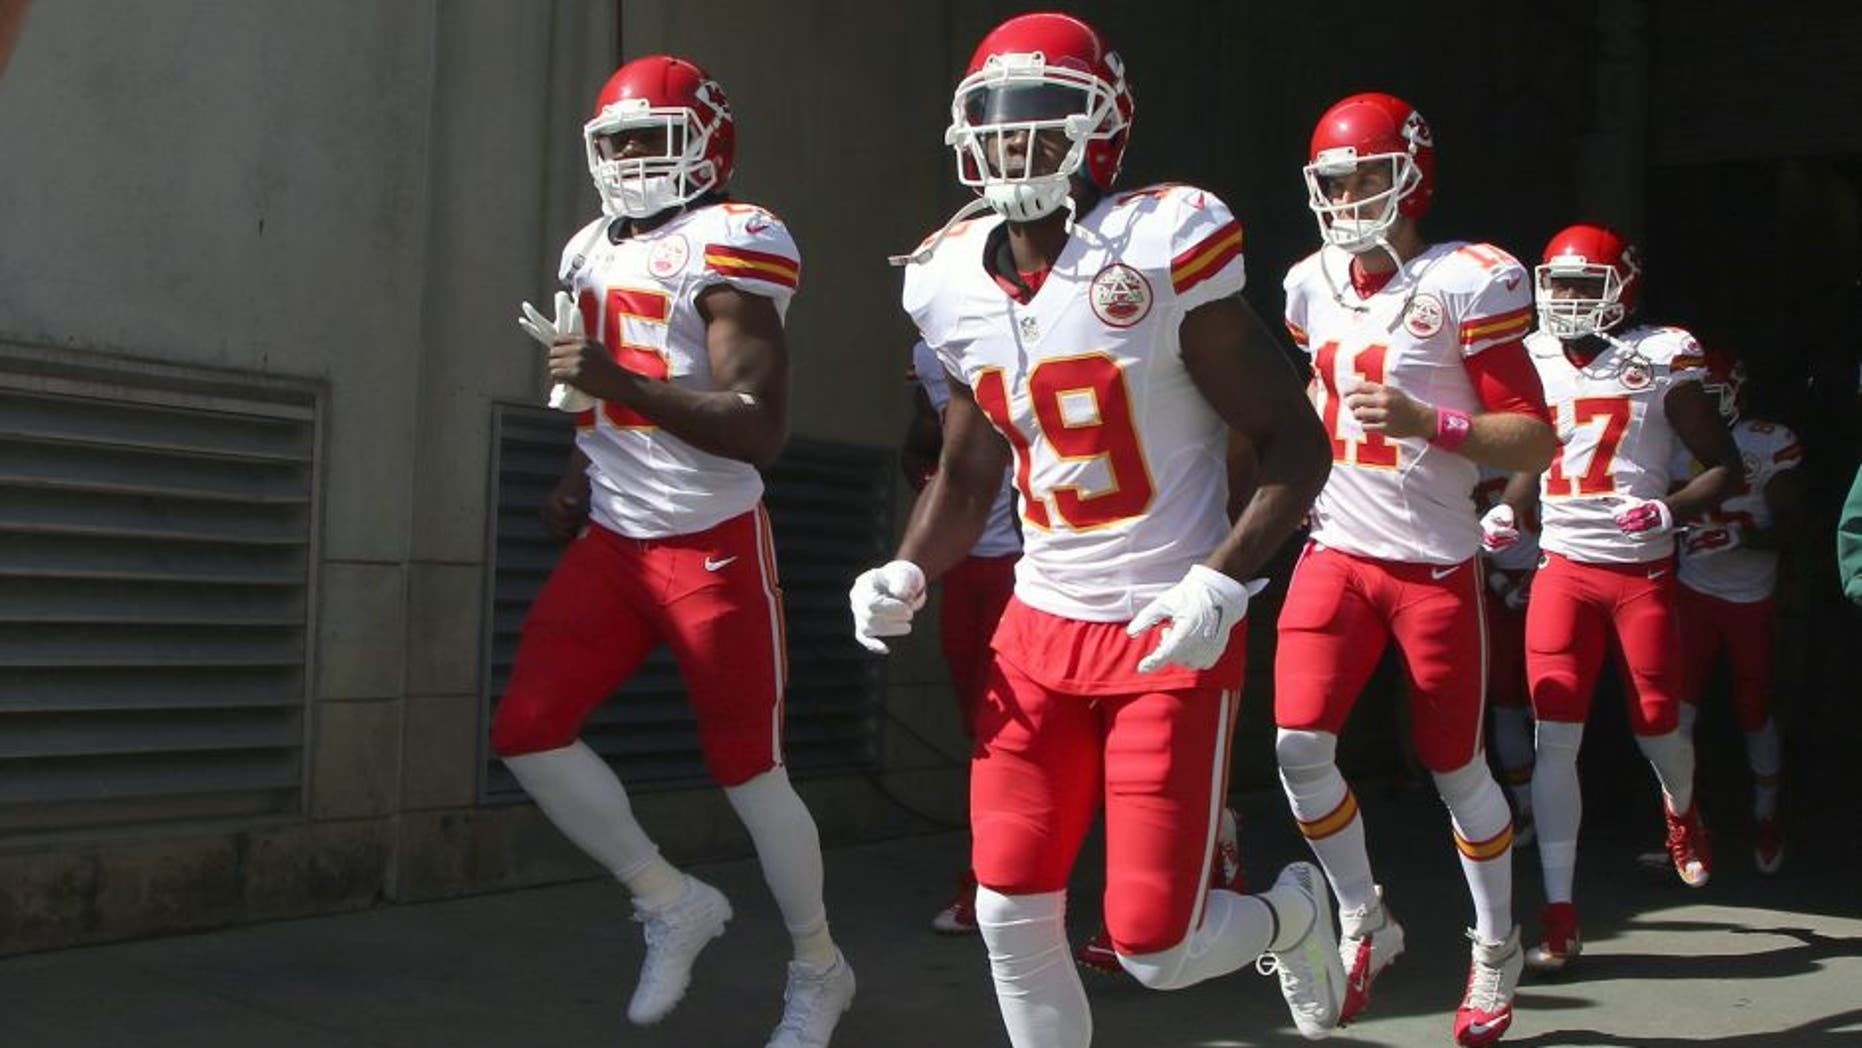 CINCINNATI, OH - OCTOBER 04: Jeremy Maclin #19 of the Kansas City Chiefs takes the field for the game against the Cincinnati Bengals at Paul Brown Stadium on October 4, 2015 in Cincinnati, Ohio. The Bengals defeated the Chiefs 36-21. (Photo by John Grieshop/Getty Images)